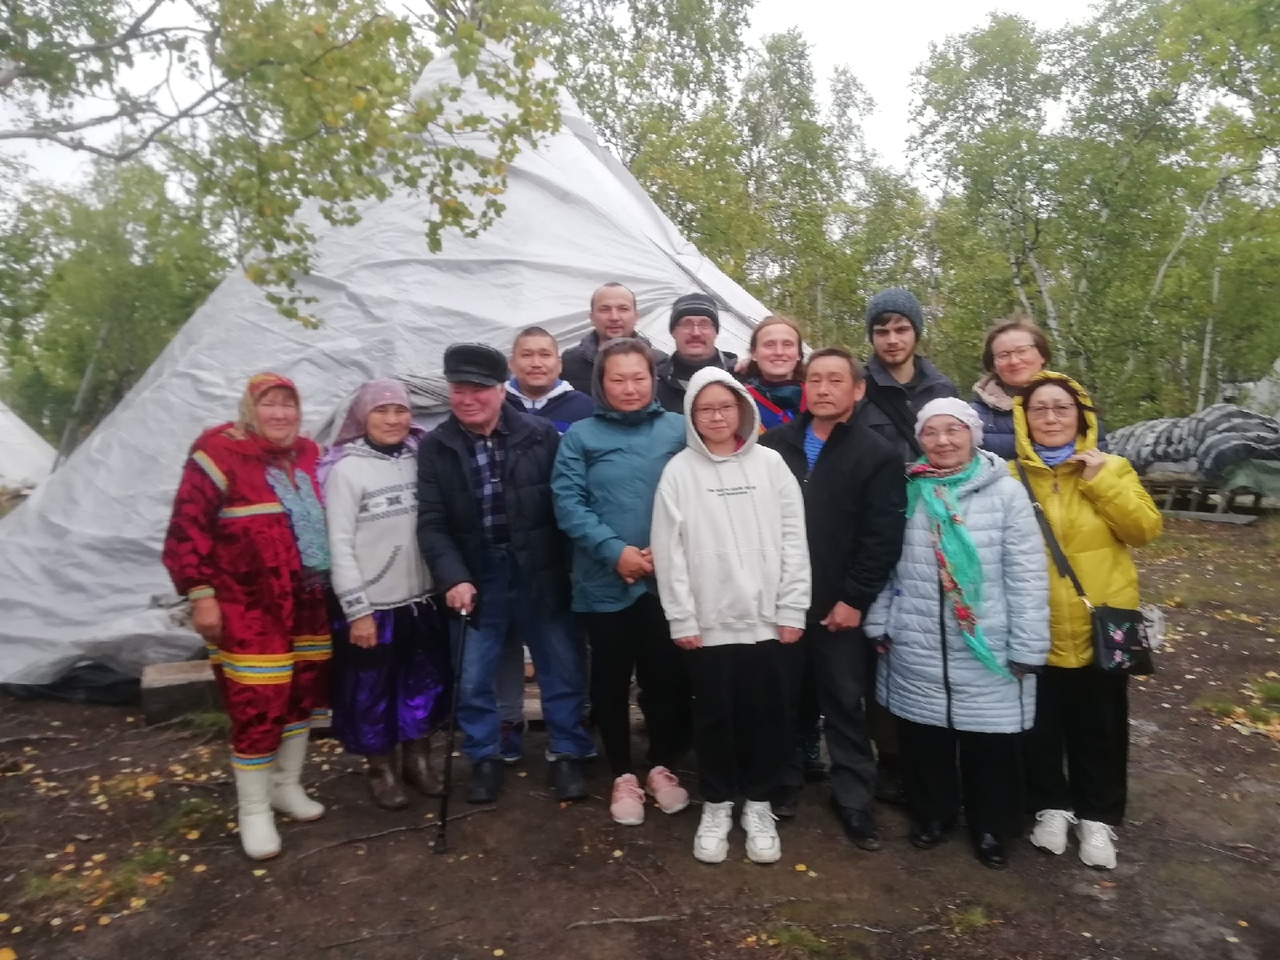 iJLsy63JRRw - National level envionronment protection action took place in Yamal area of Siberia.